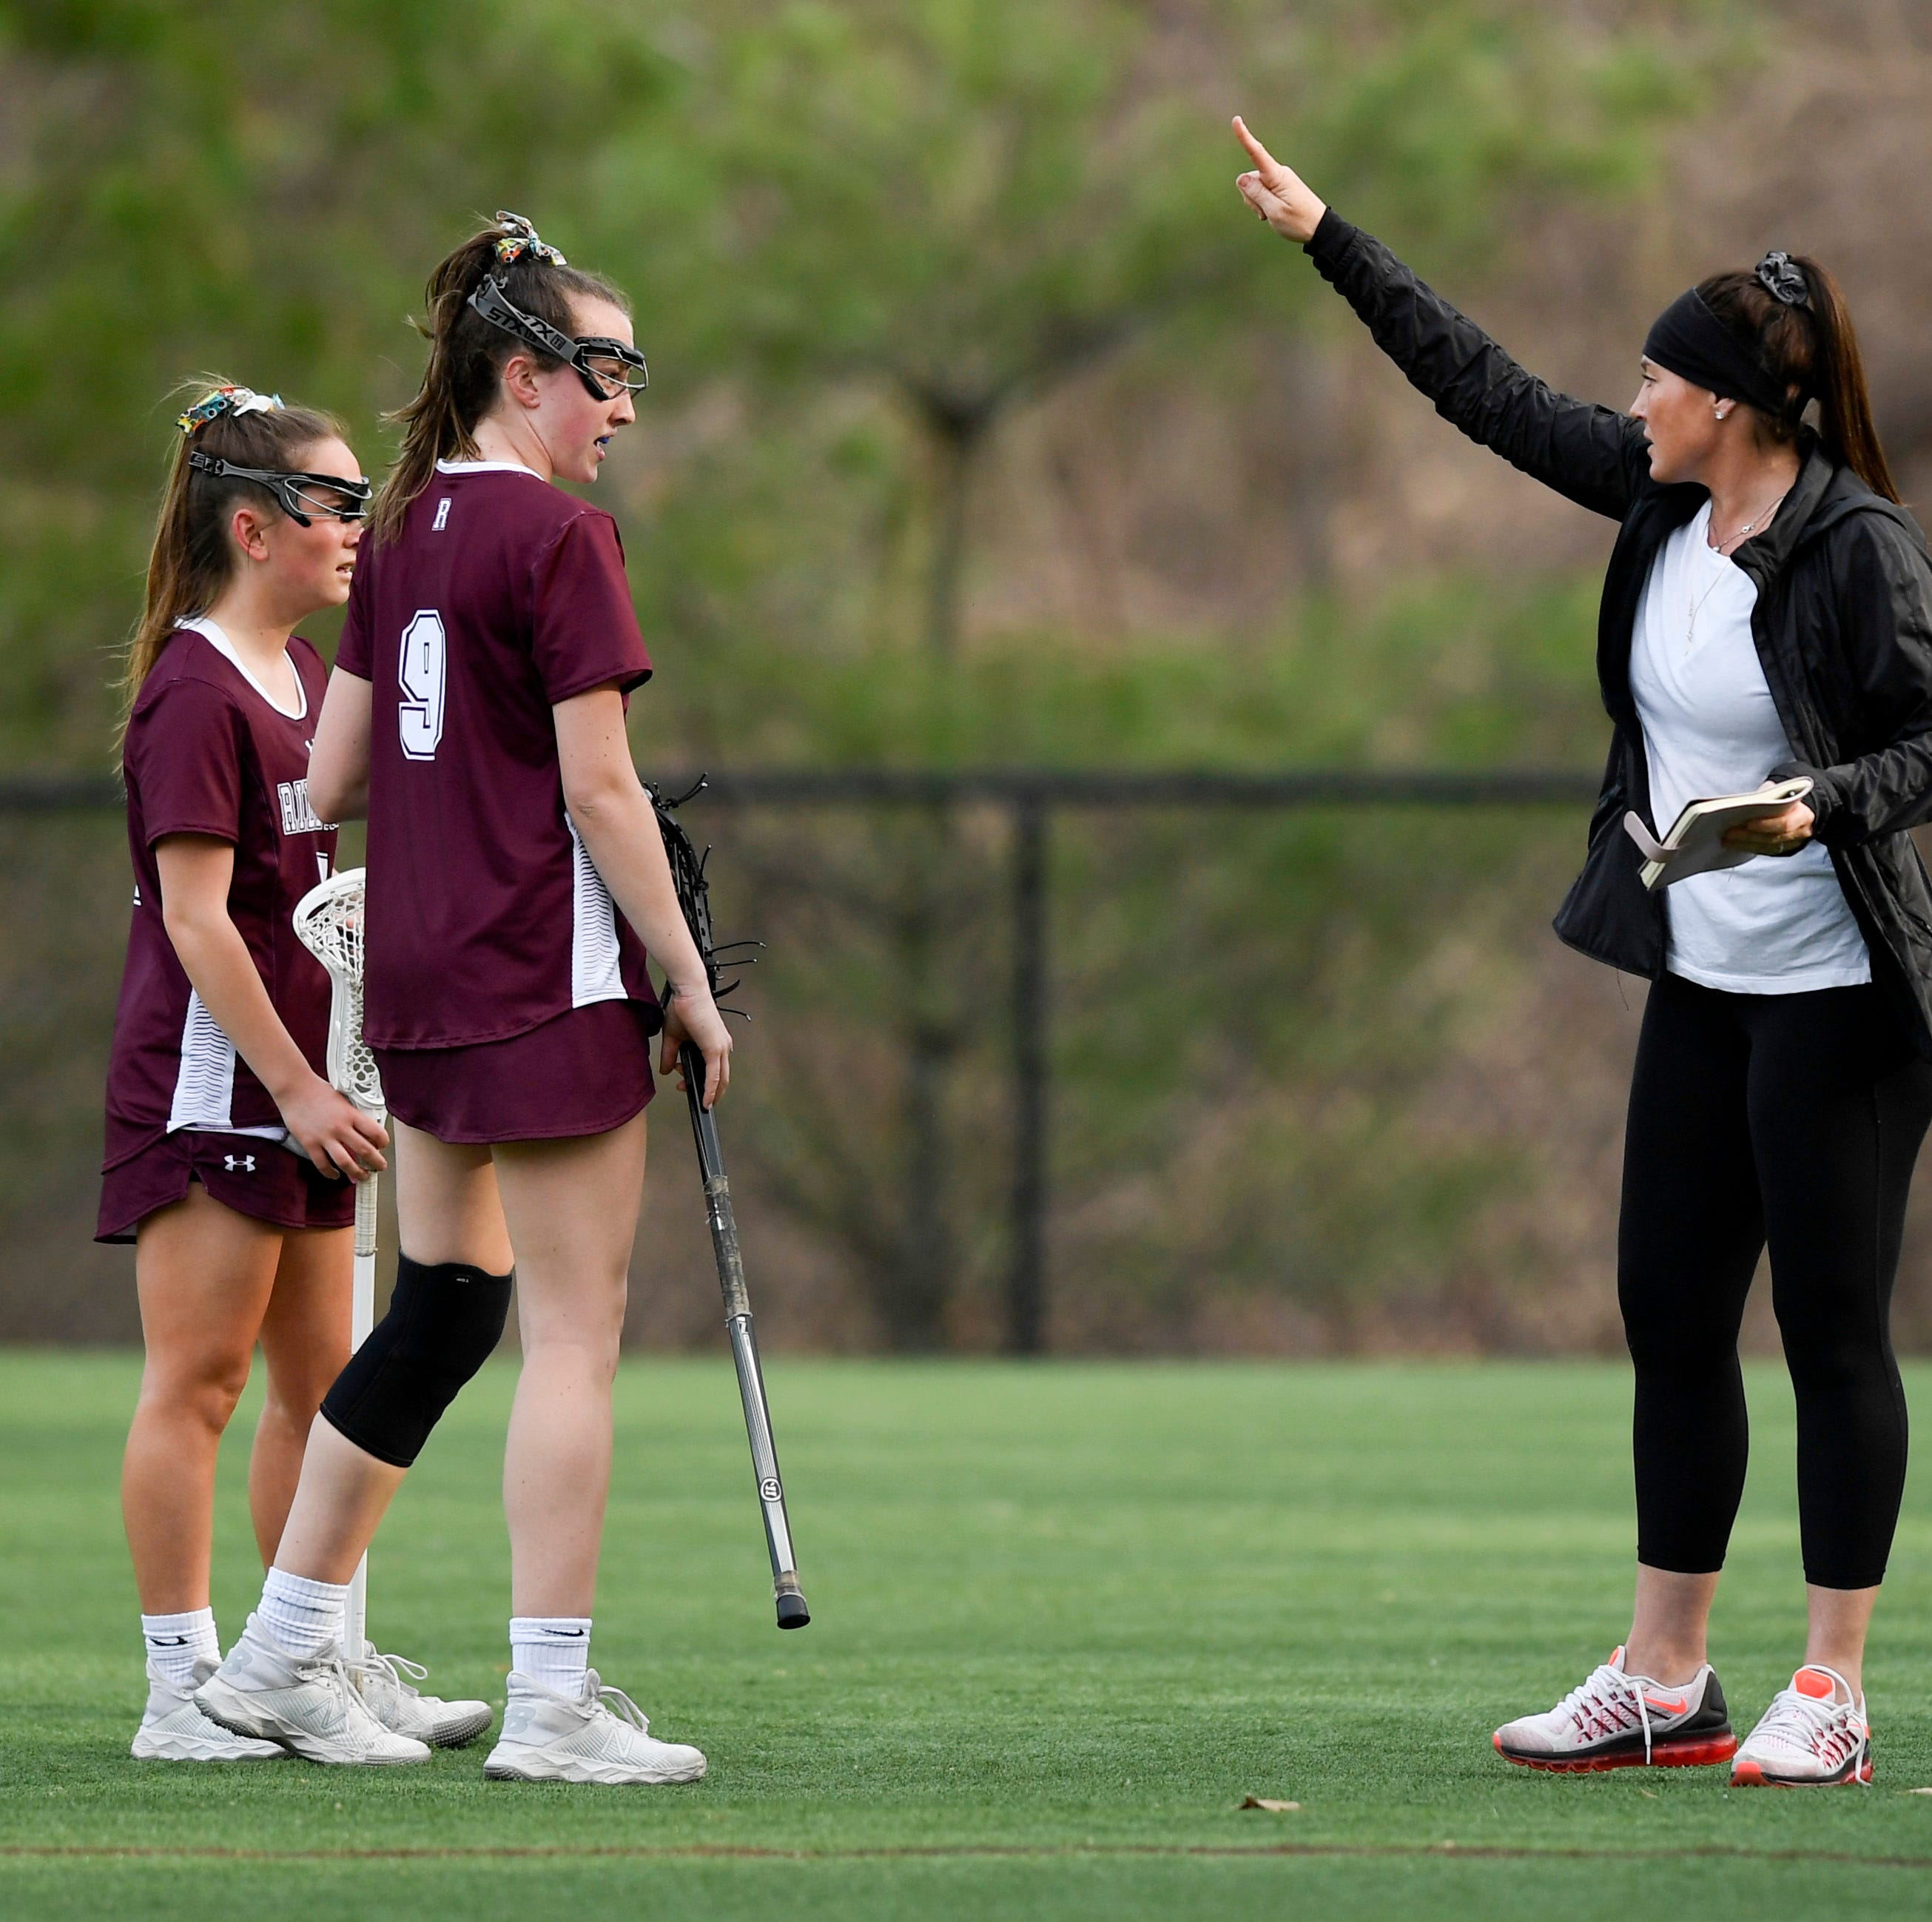 Coaches chart their own paths from college programs back to high school